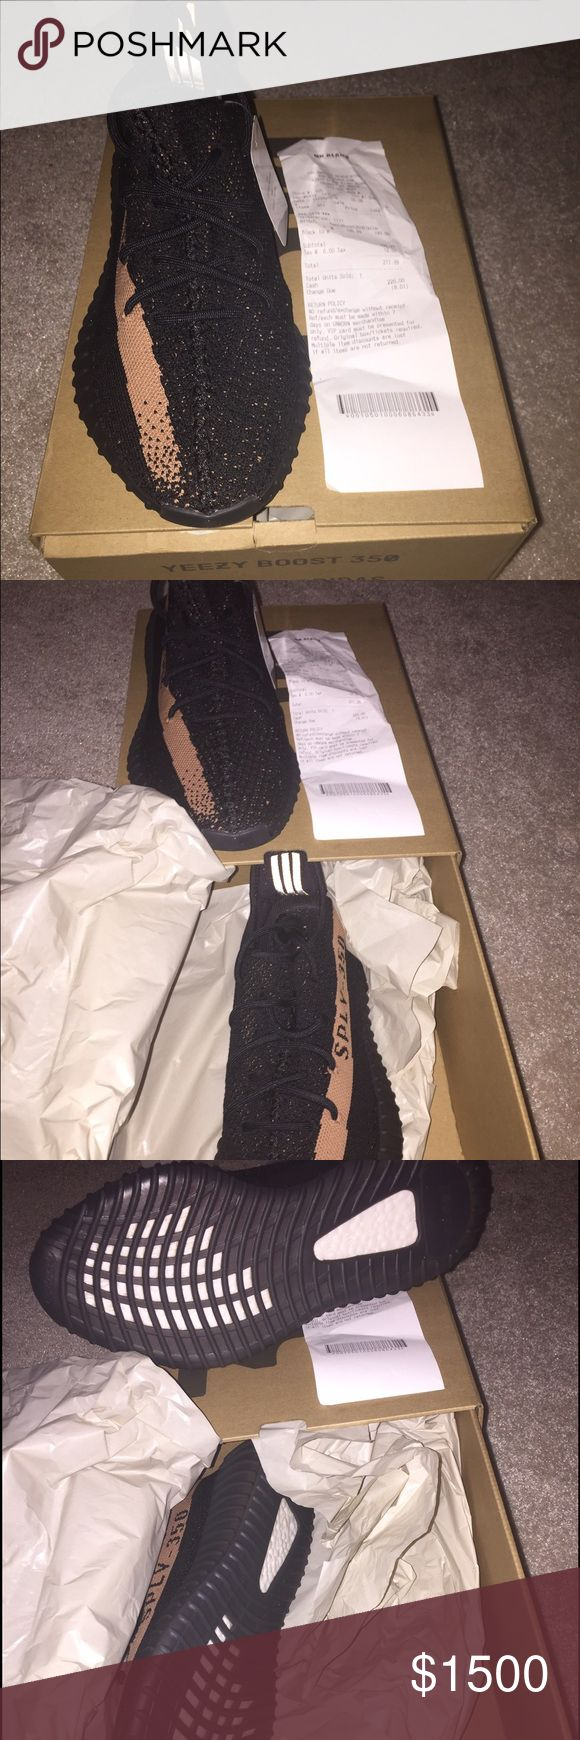 Kanye West Yeezy 350 boost black & copper Brand new in box !! Just purchased today comes with receipt Adidas Shoes Sneakers